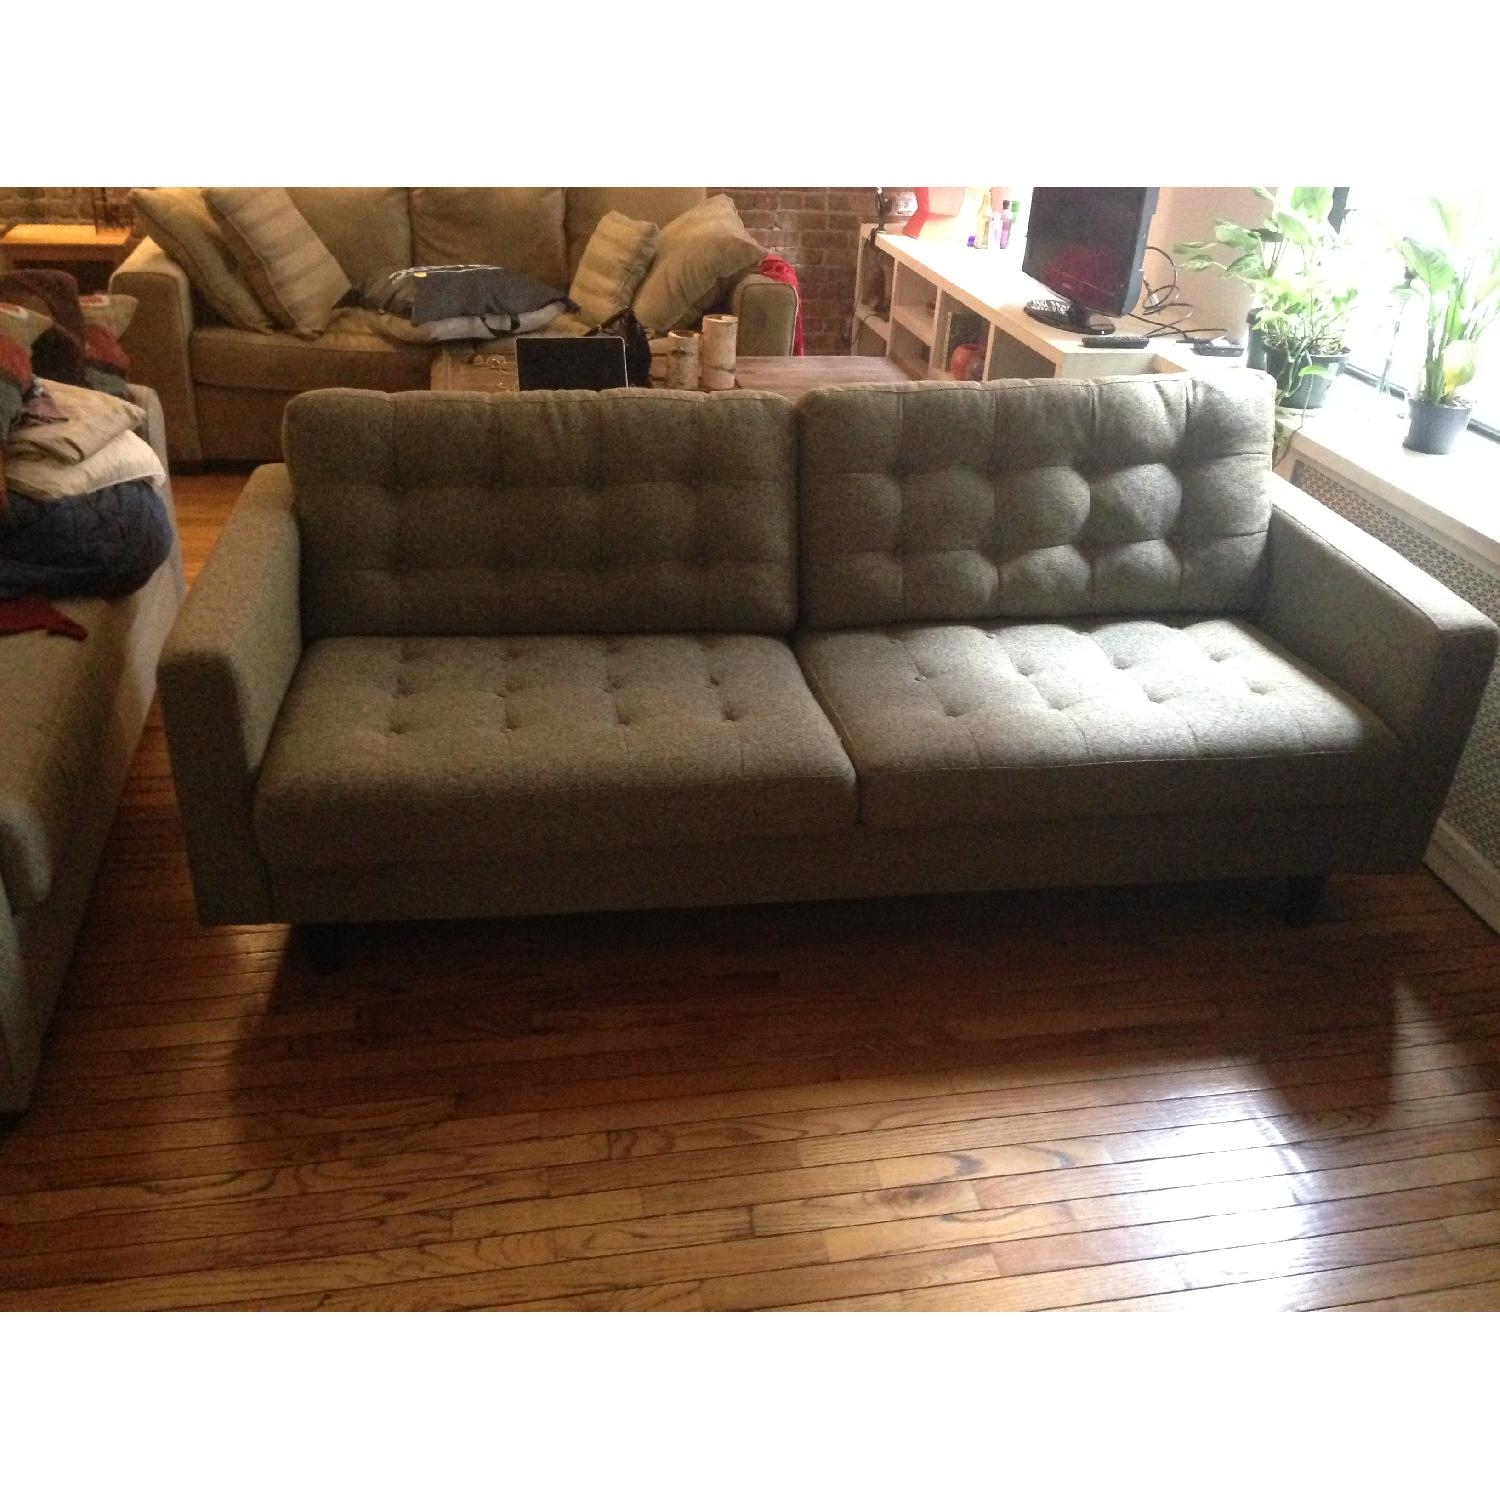 Modway Sofa in Oatmeal - image-3